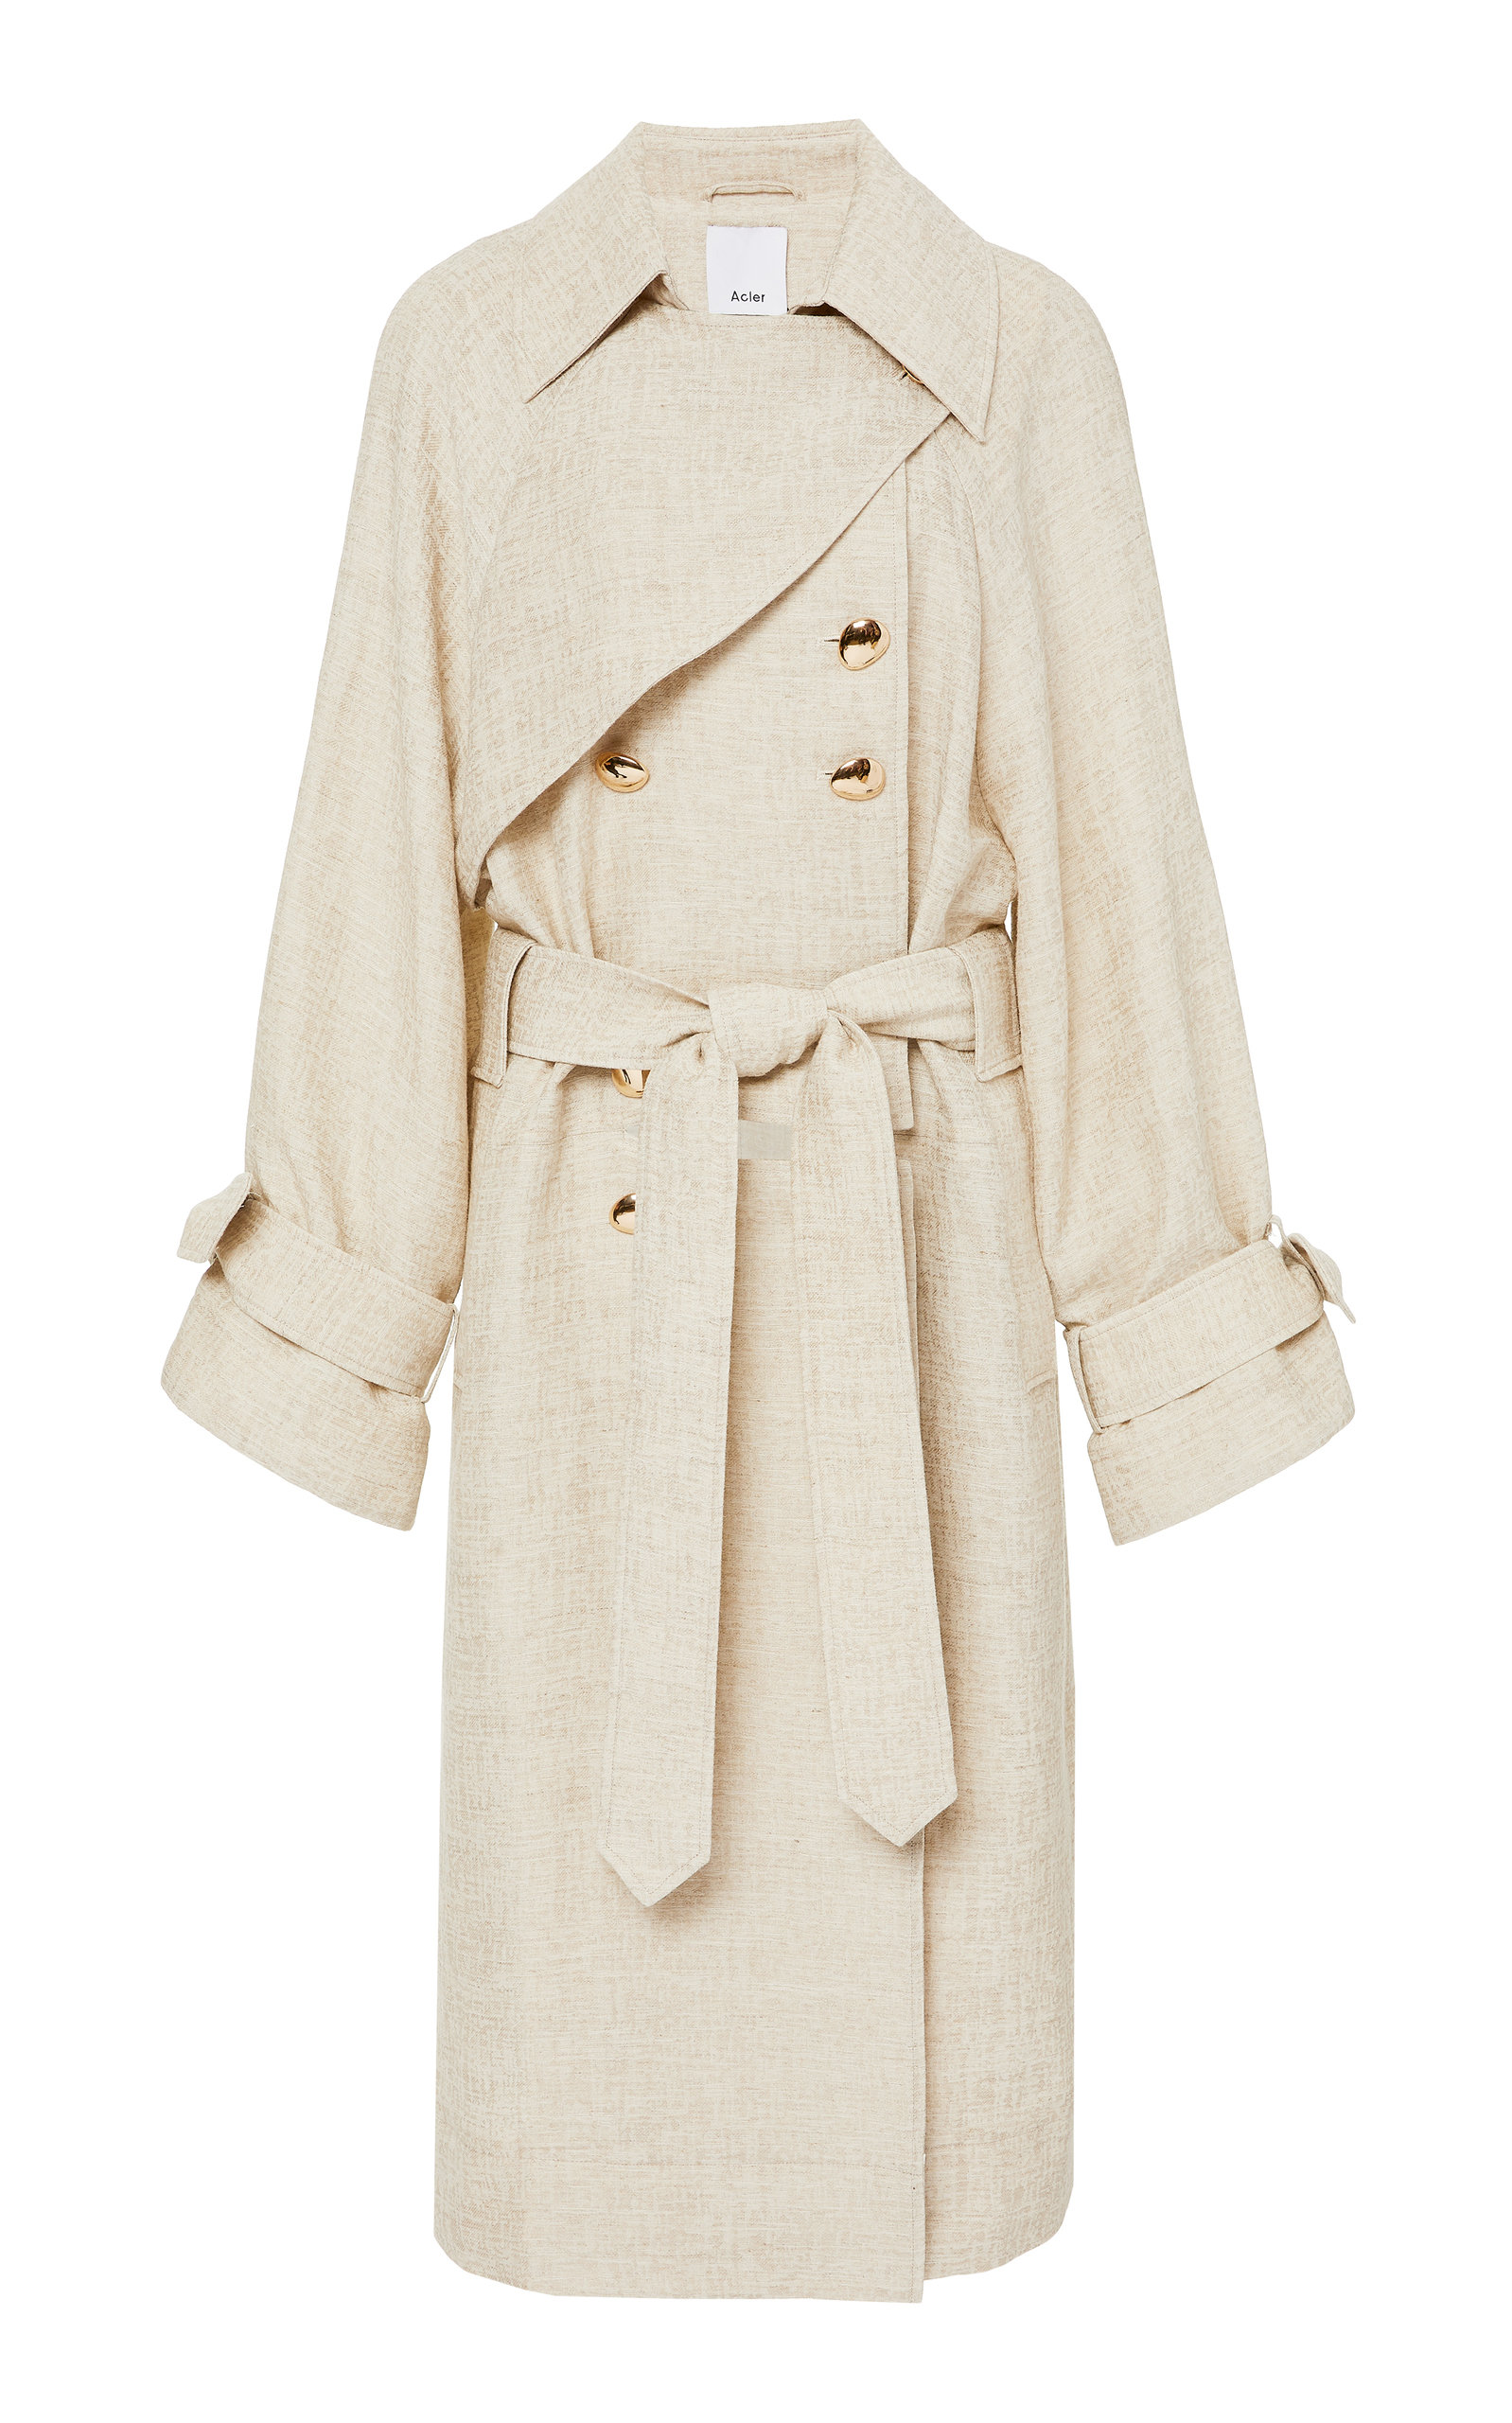 Acler REECE DETACHABLE TRENCH COAT